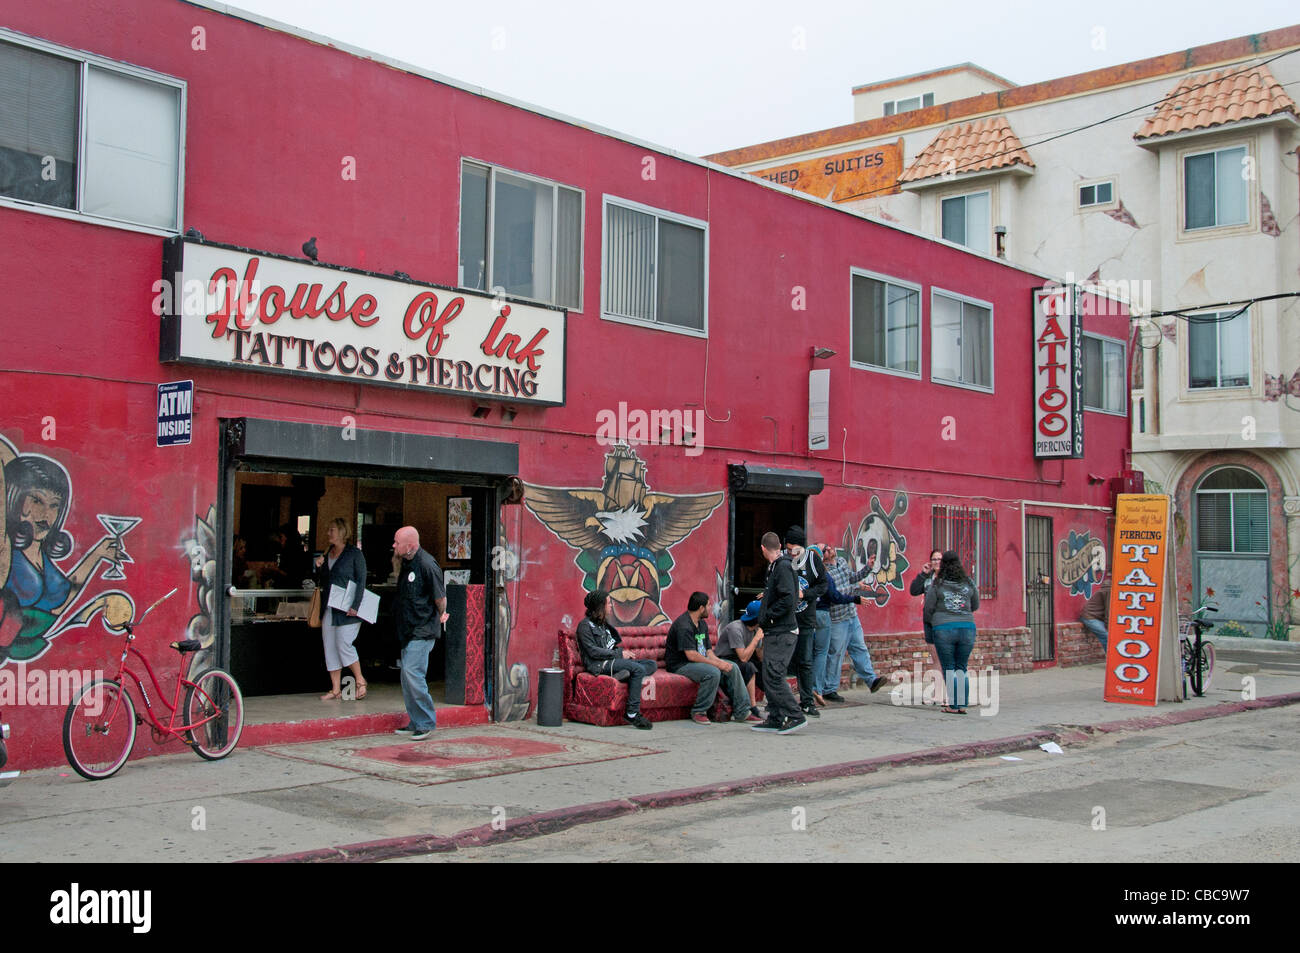 House Of Ink Tattoo And Piercing Shop Venice Beach California United States Stock Image